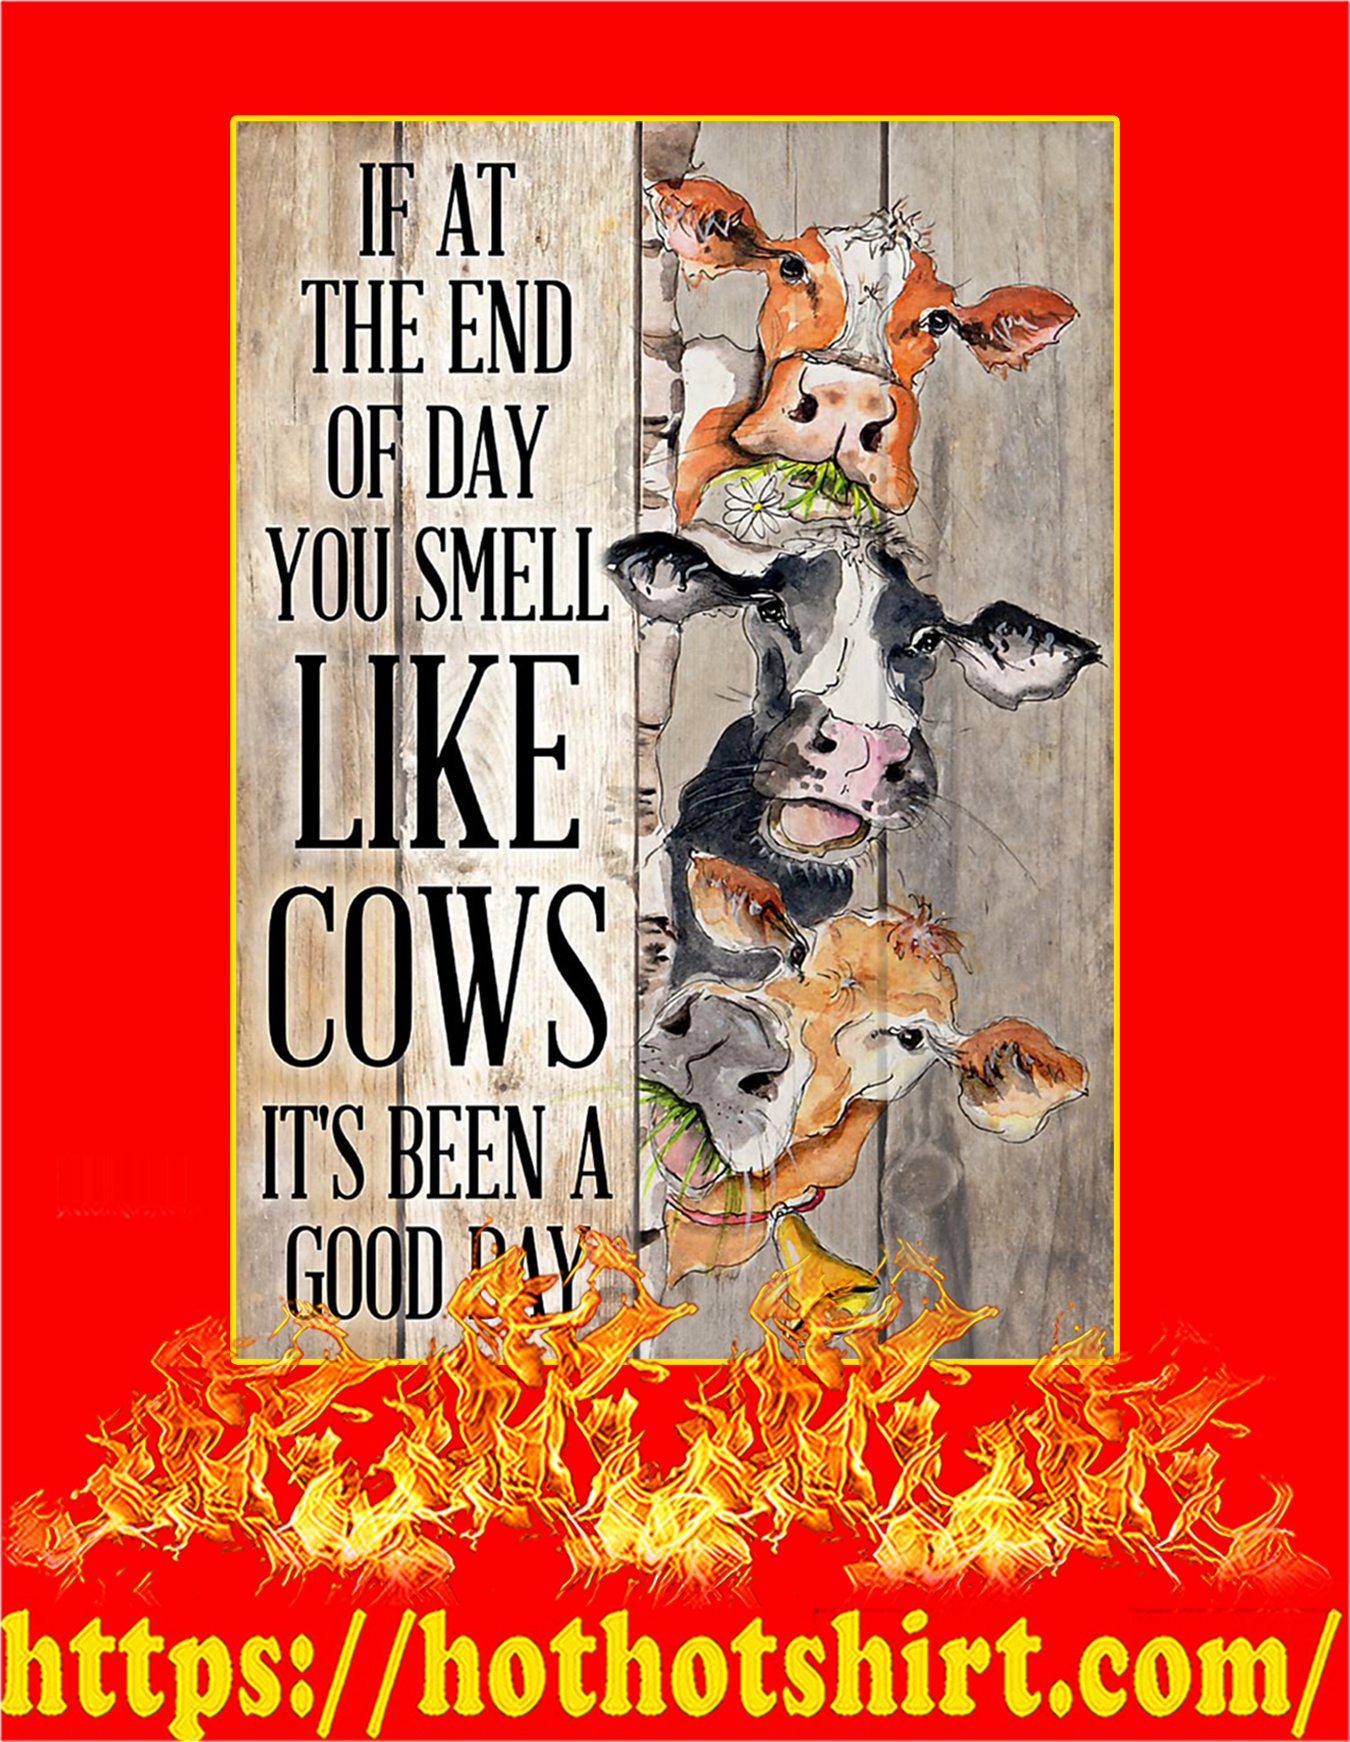 If at the end of day you smell like cows poster - A2